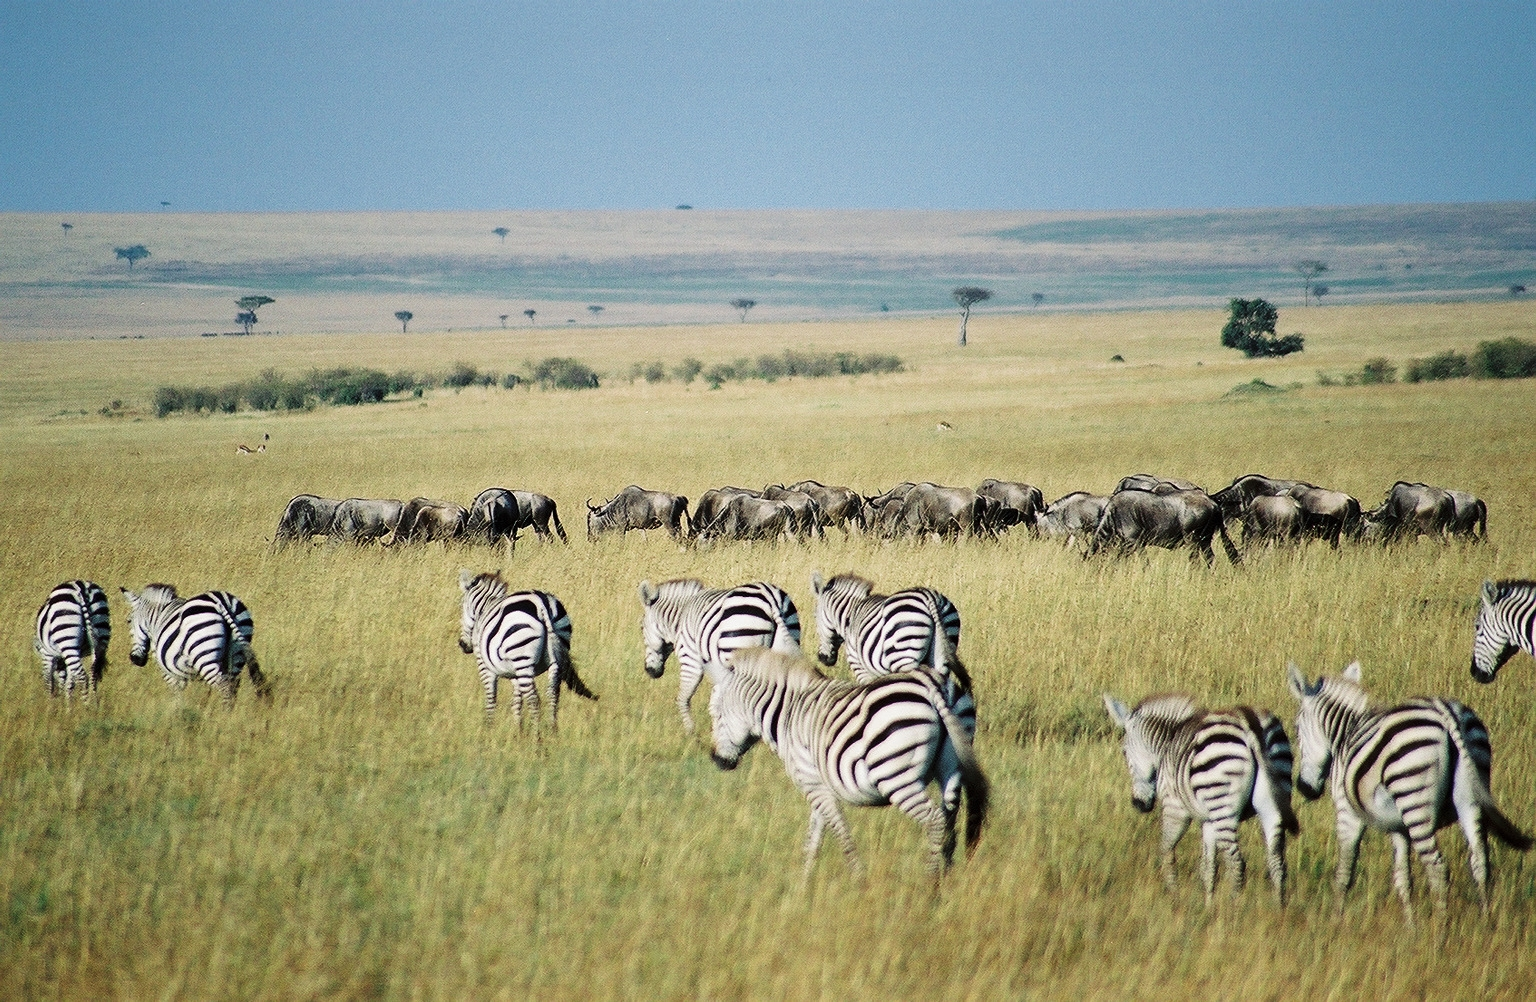 The Great Migrations, wildebeast migration, great migration,